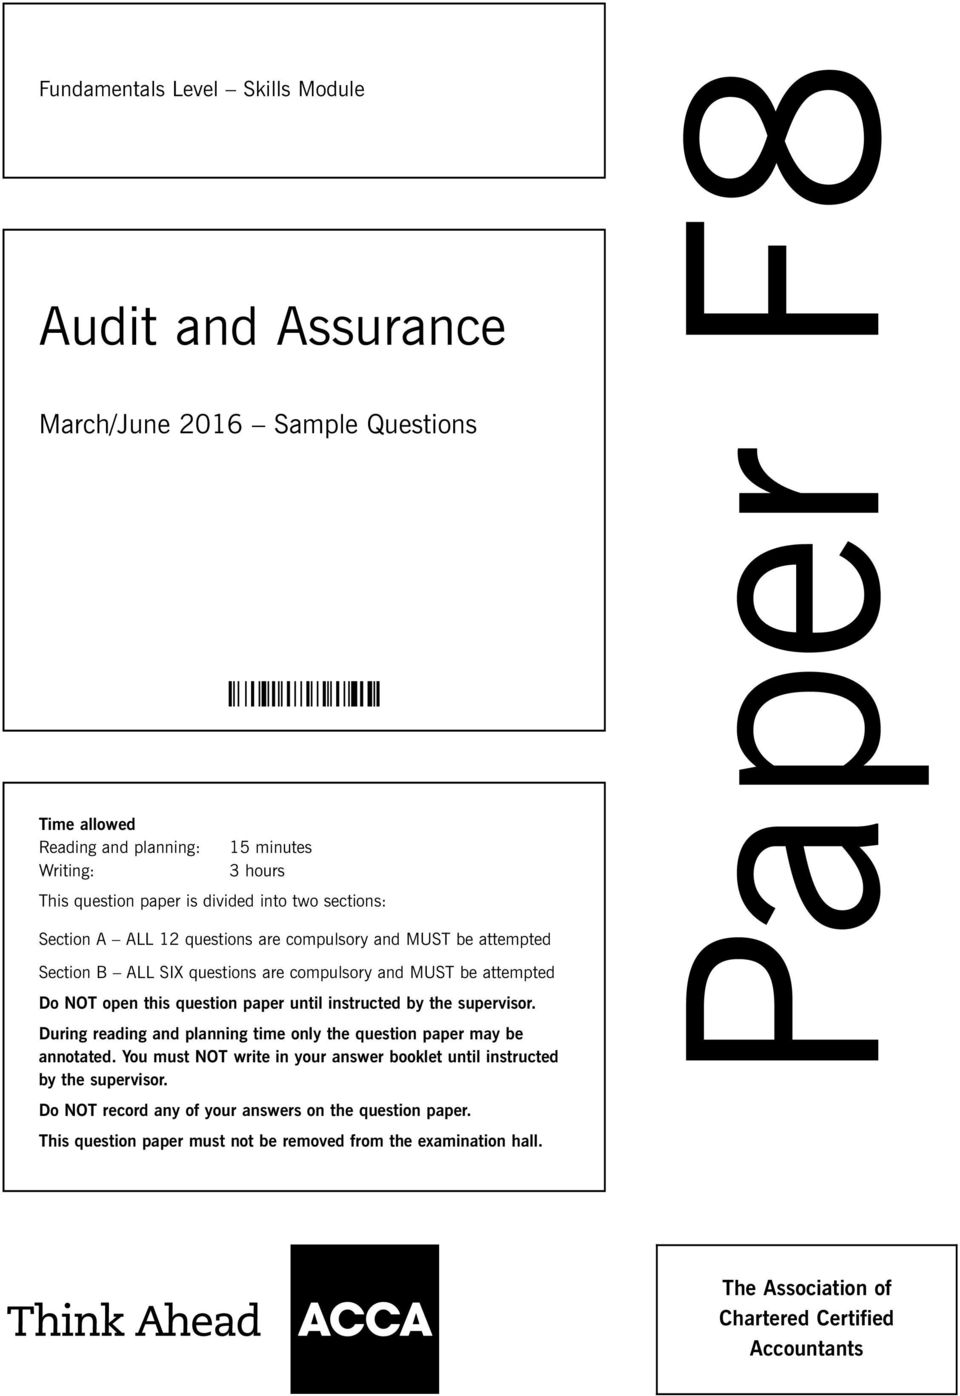 paper f audit and assurance sample questions until instructed by the supervisor during reading and planning time only the question paper